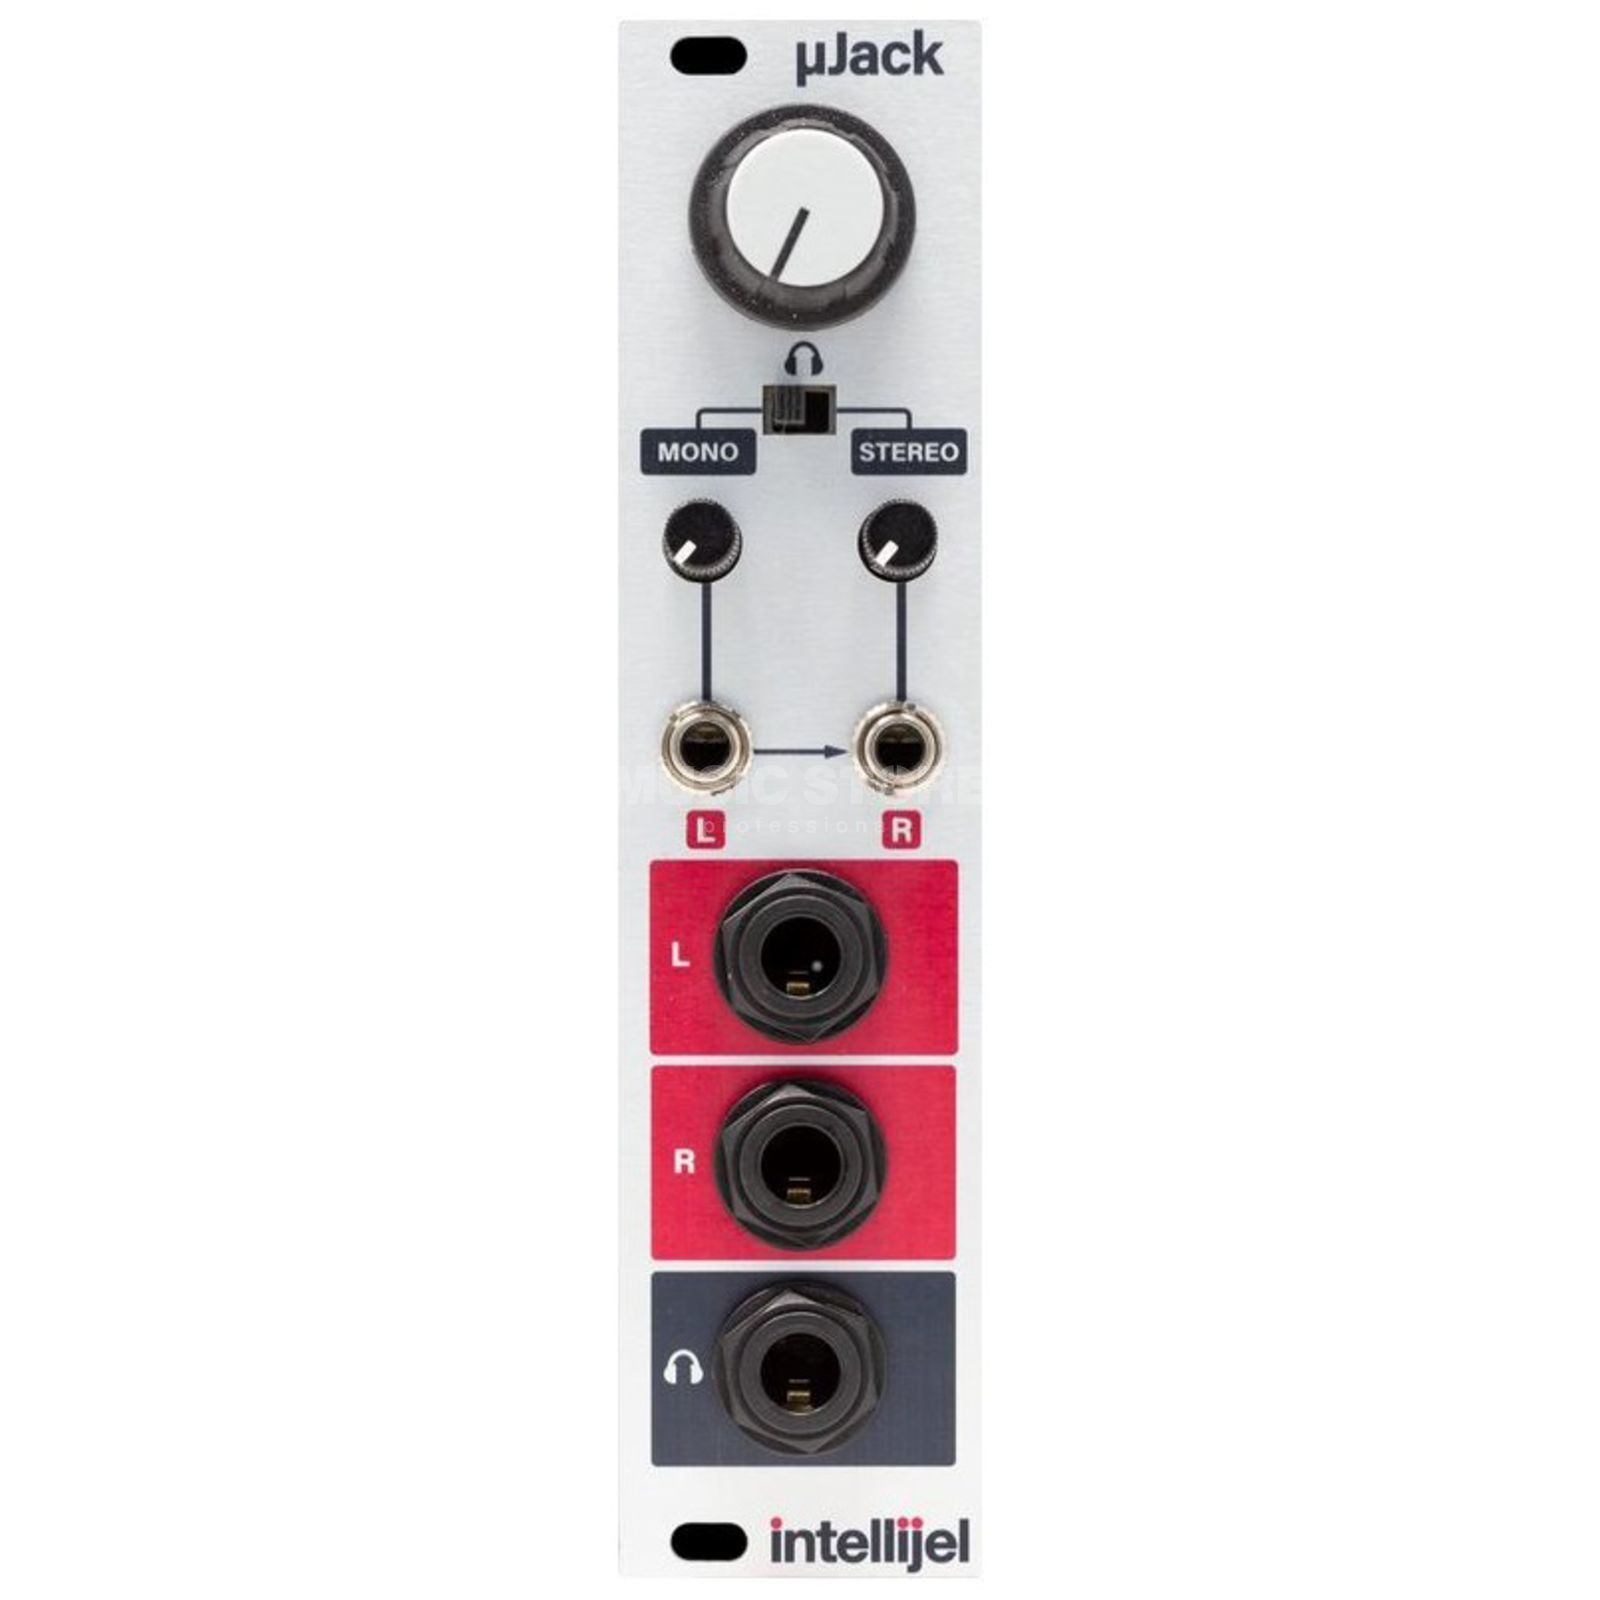 Intellijel uJack Headphone and Stereo Line Out Produktbillede